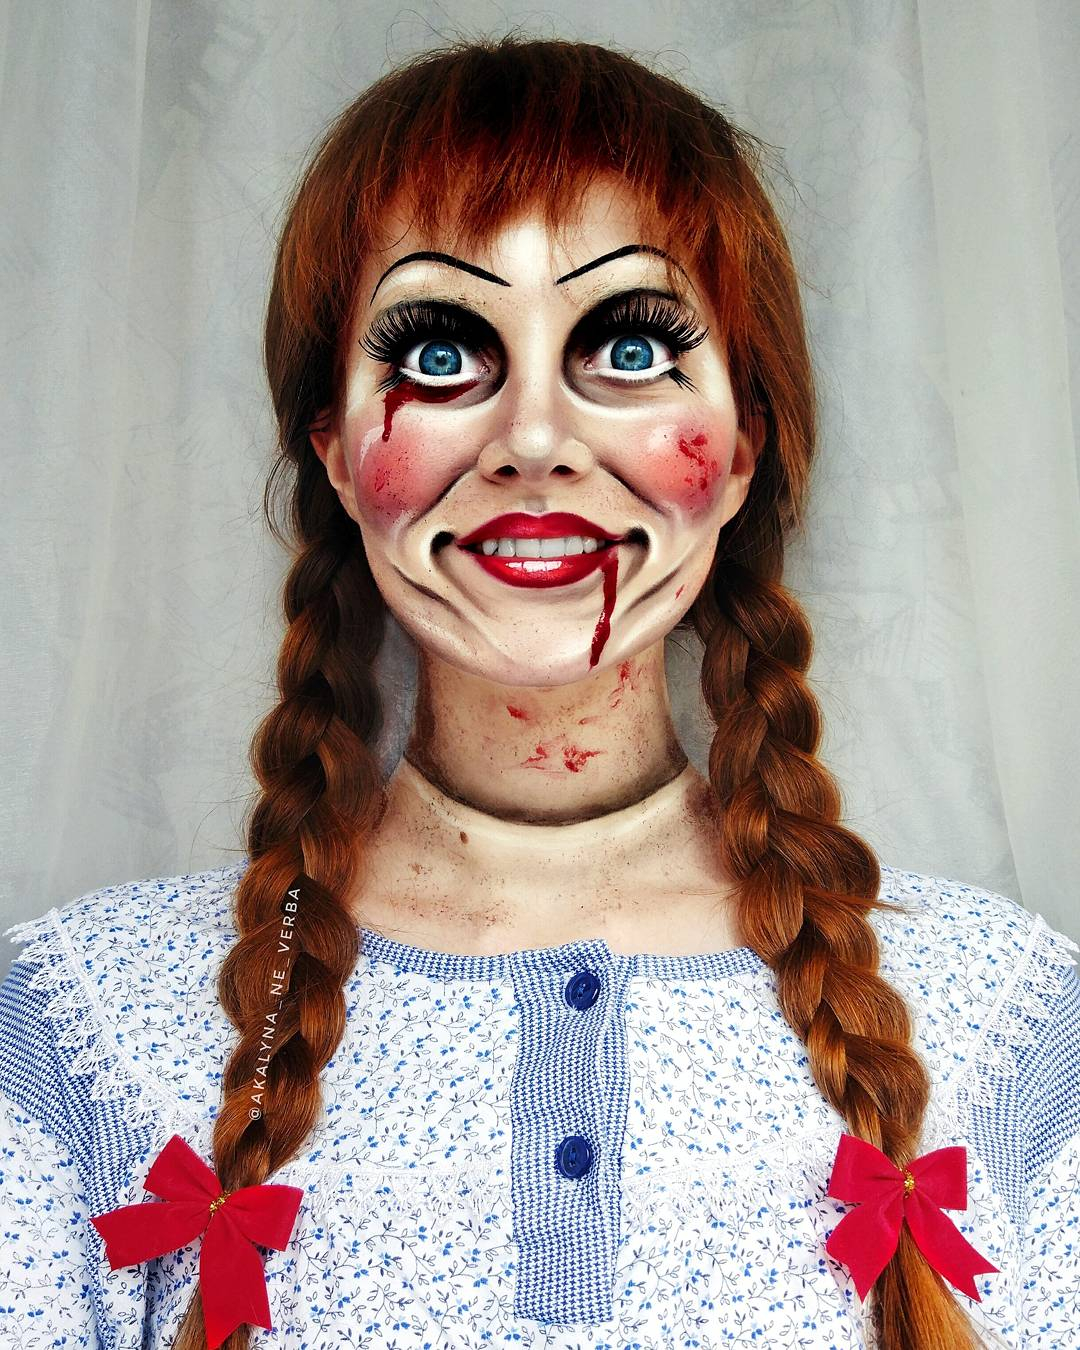 popular horror movie character annabelle to get the effect of a real life porcelain doll i used usual makeup enlarging contact lenses stage blood